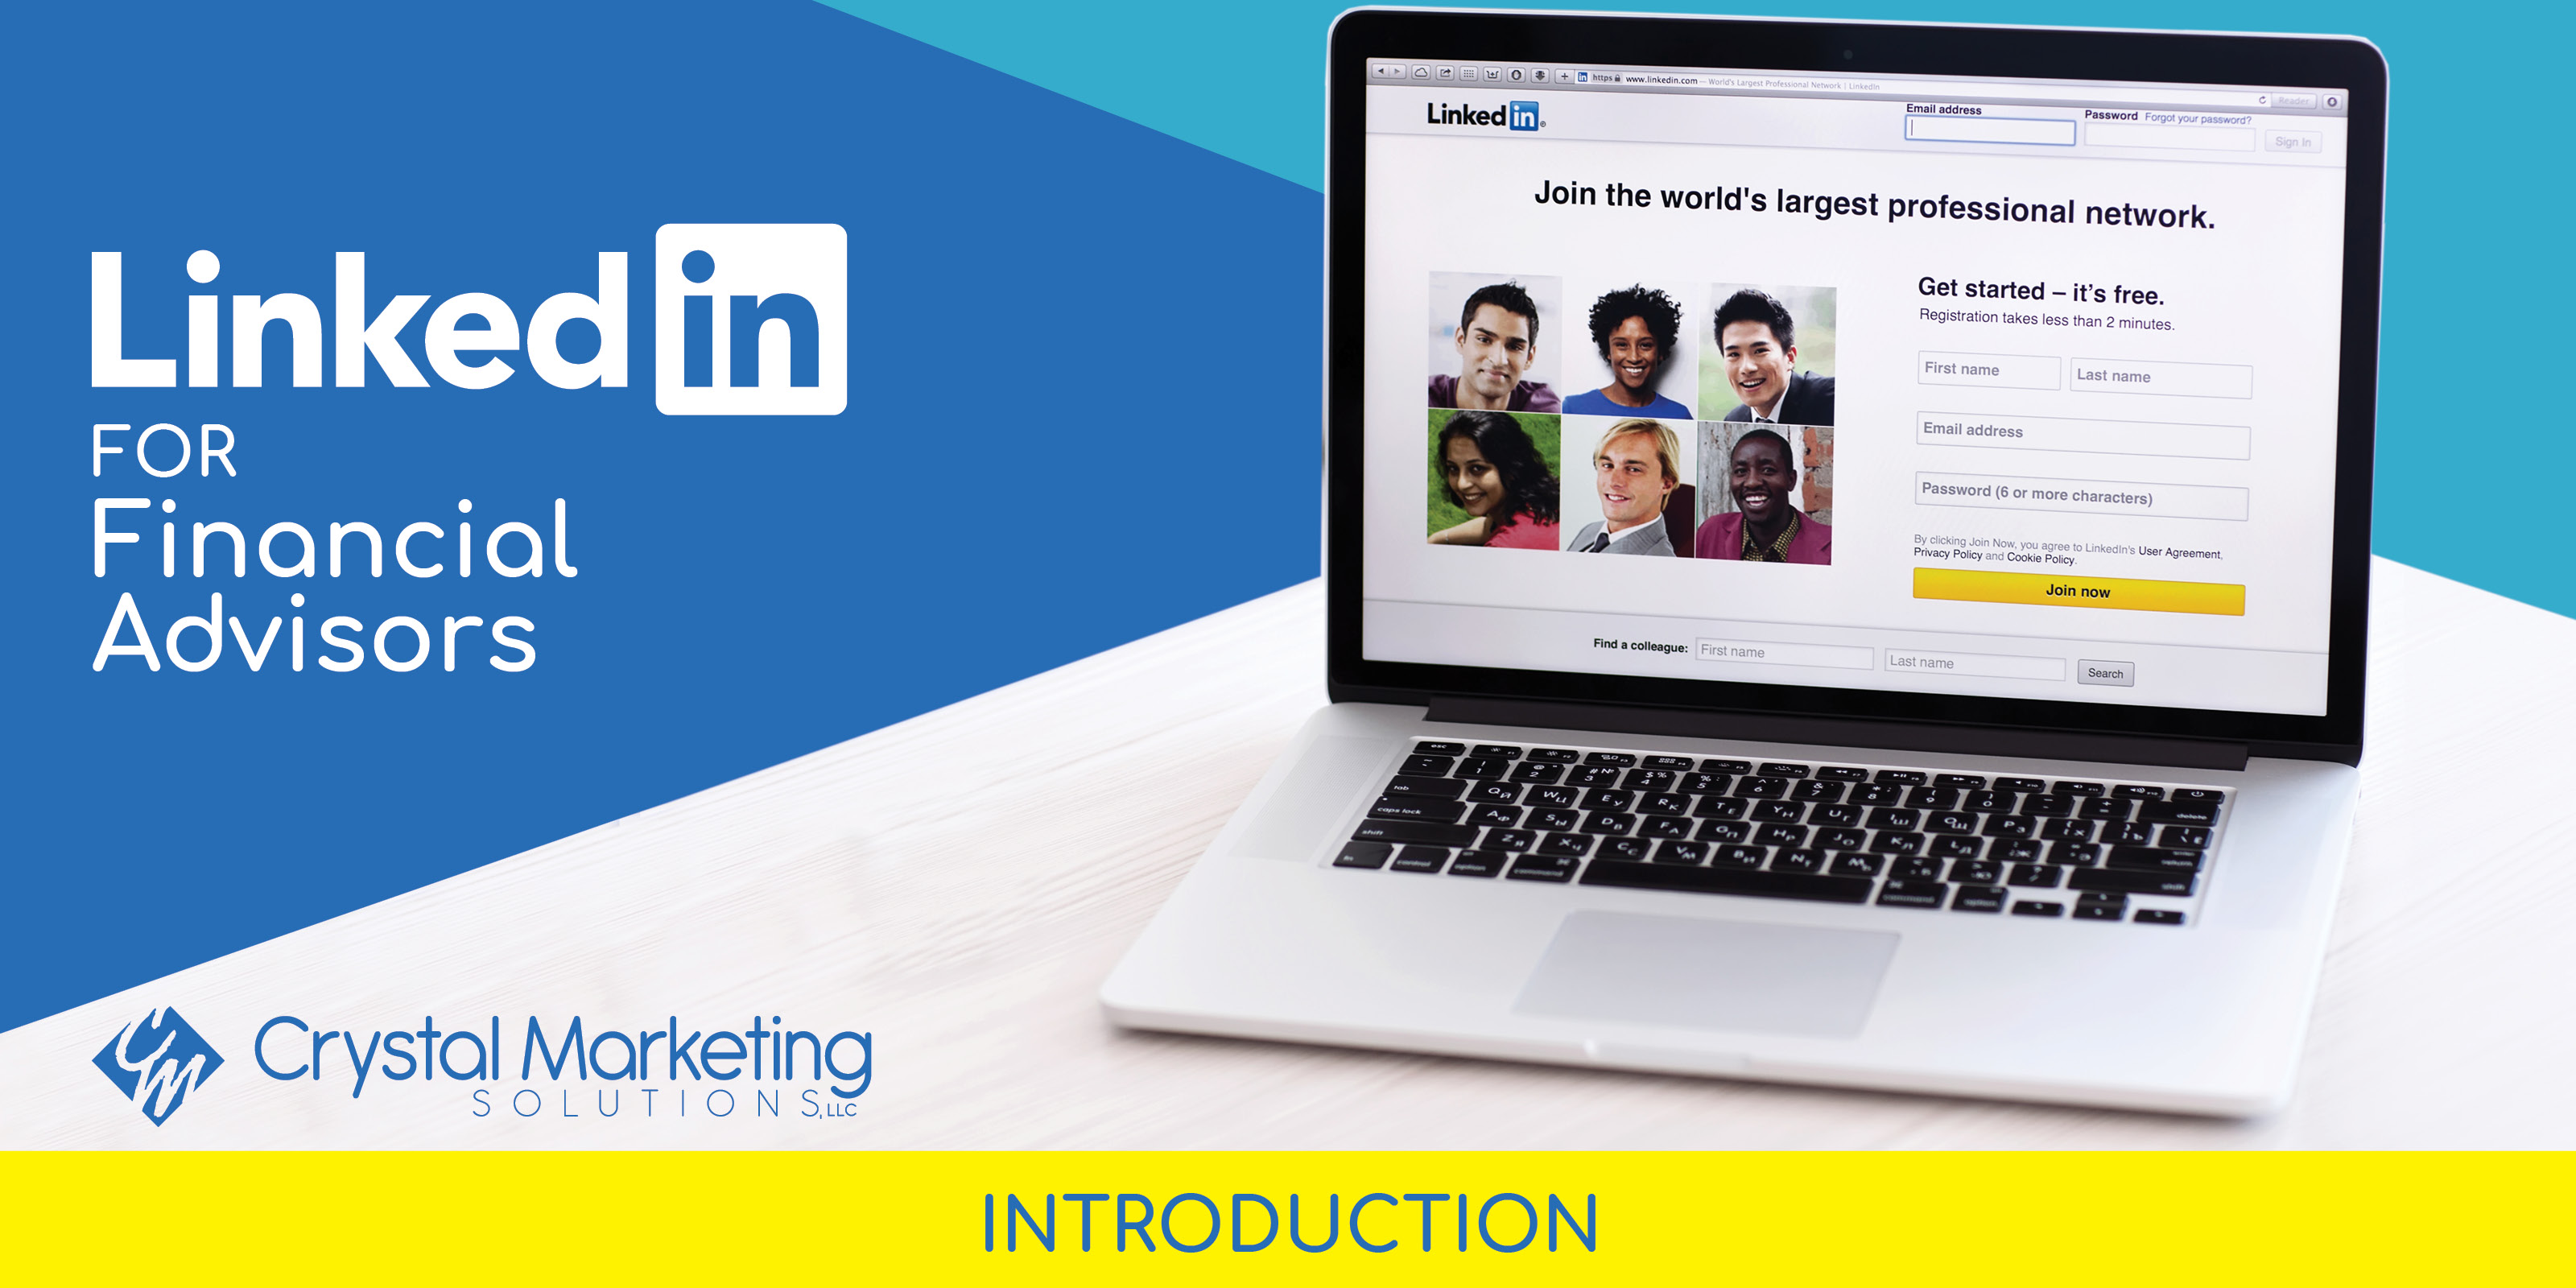 An Introduction to LinkedIn for Financial Advisors